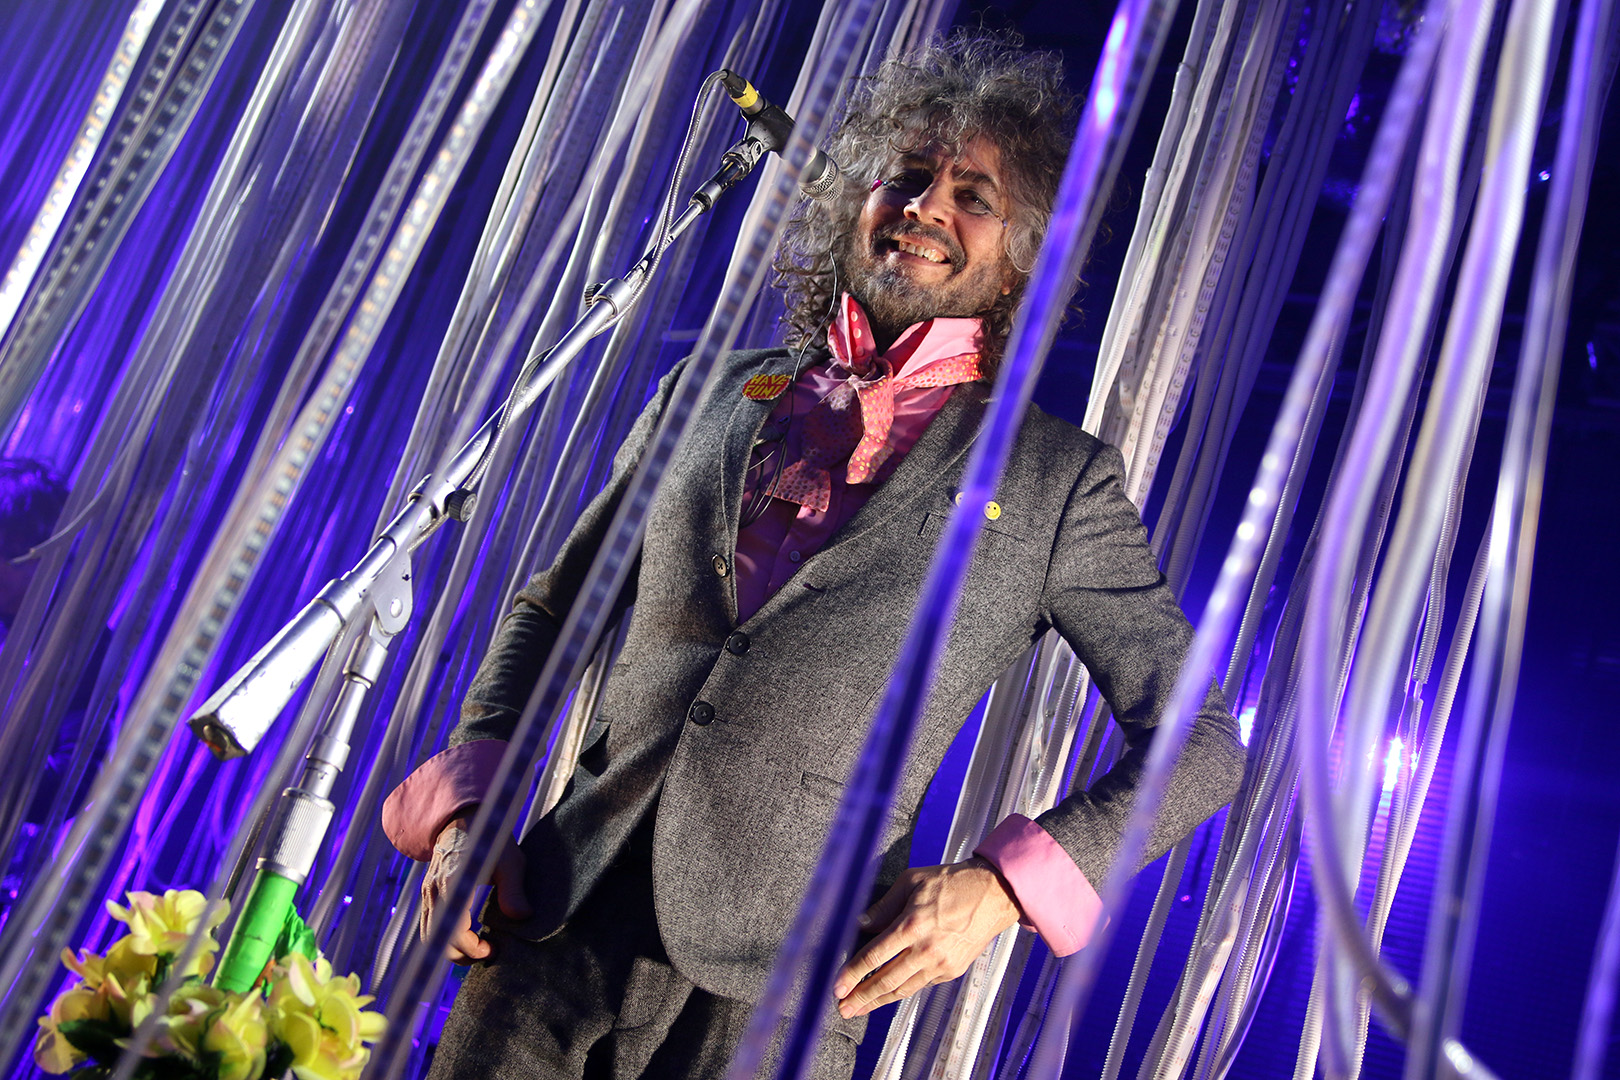 The Flaming Lips - thephoto.se/ Rodrigo Rivas Ruiz